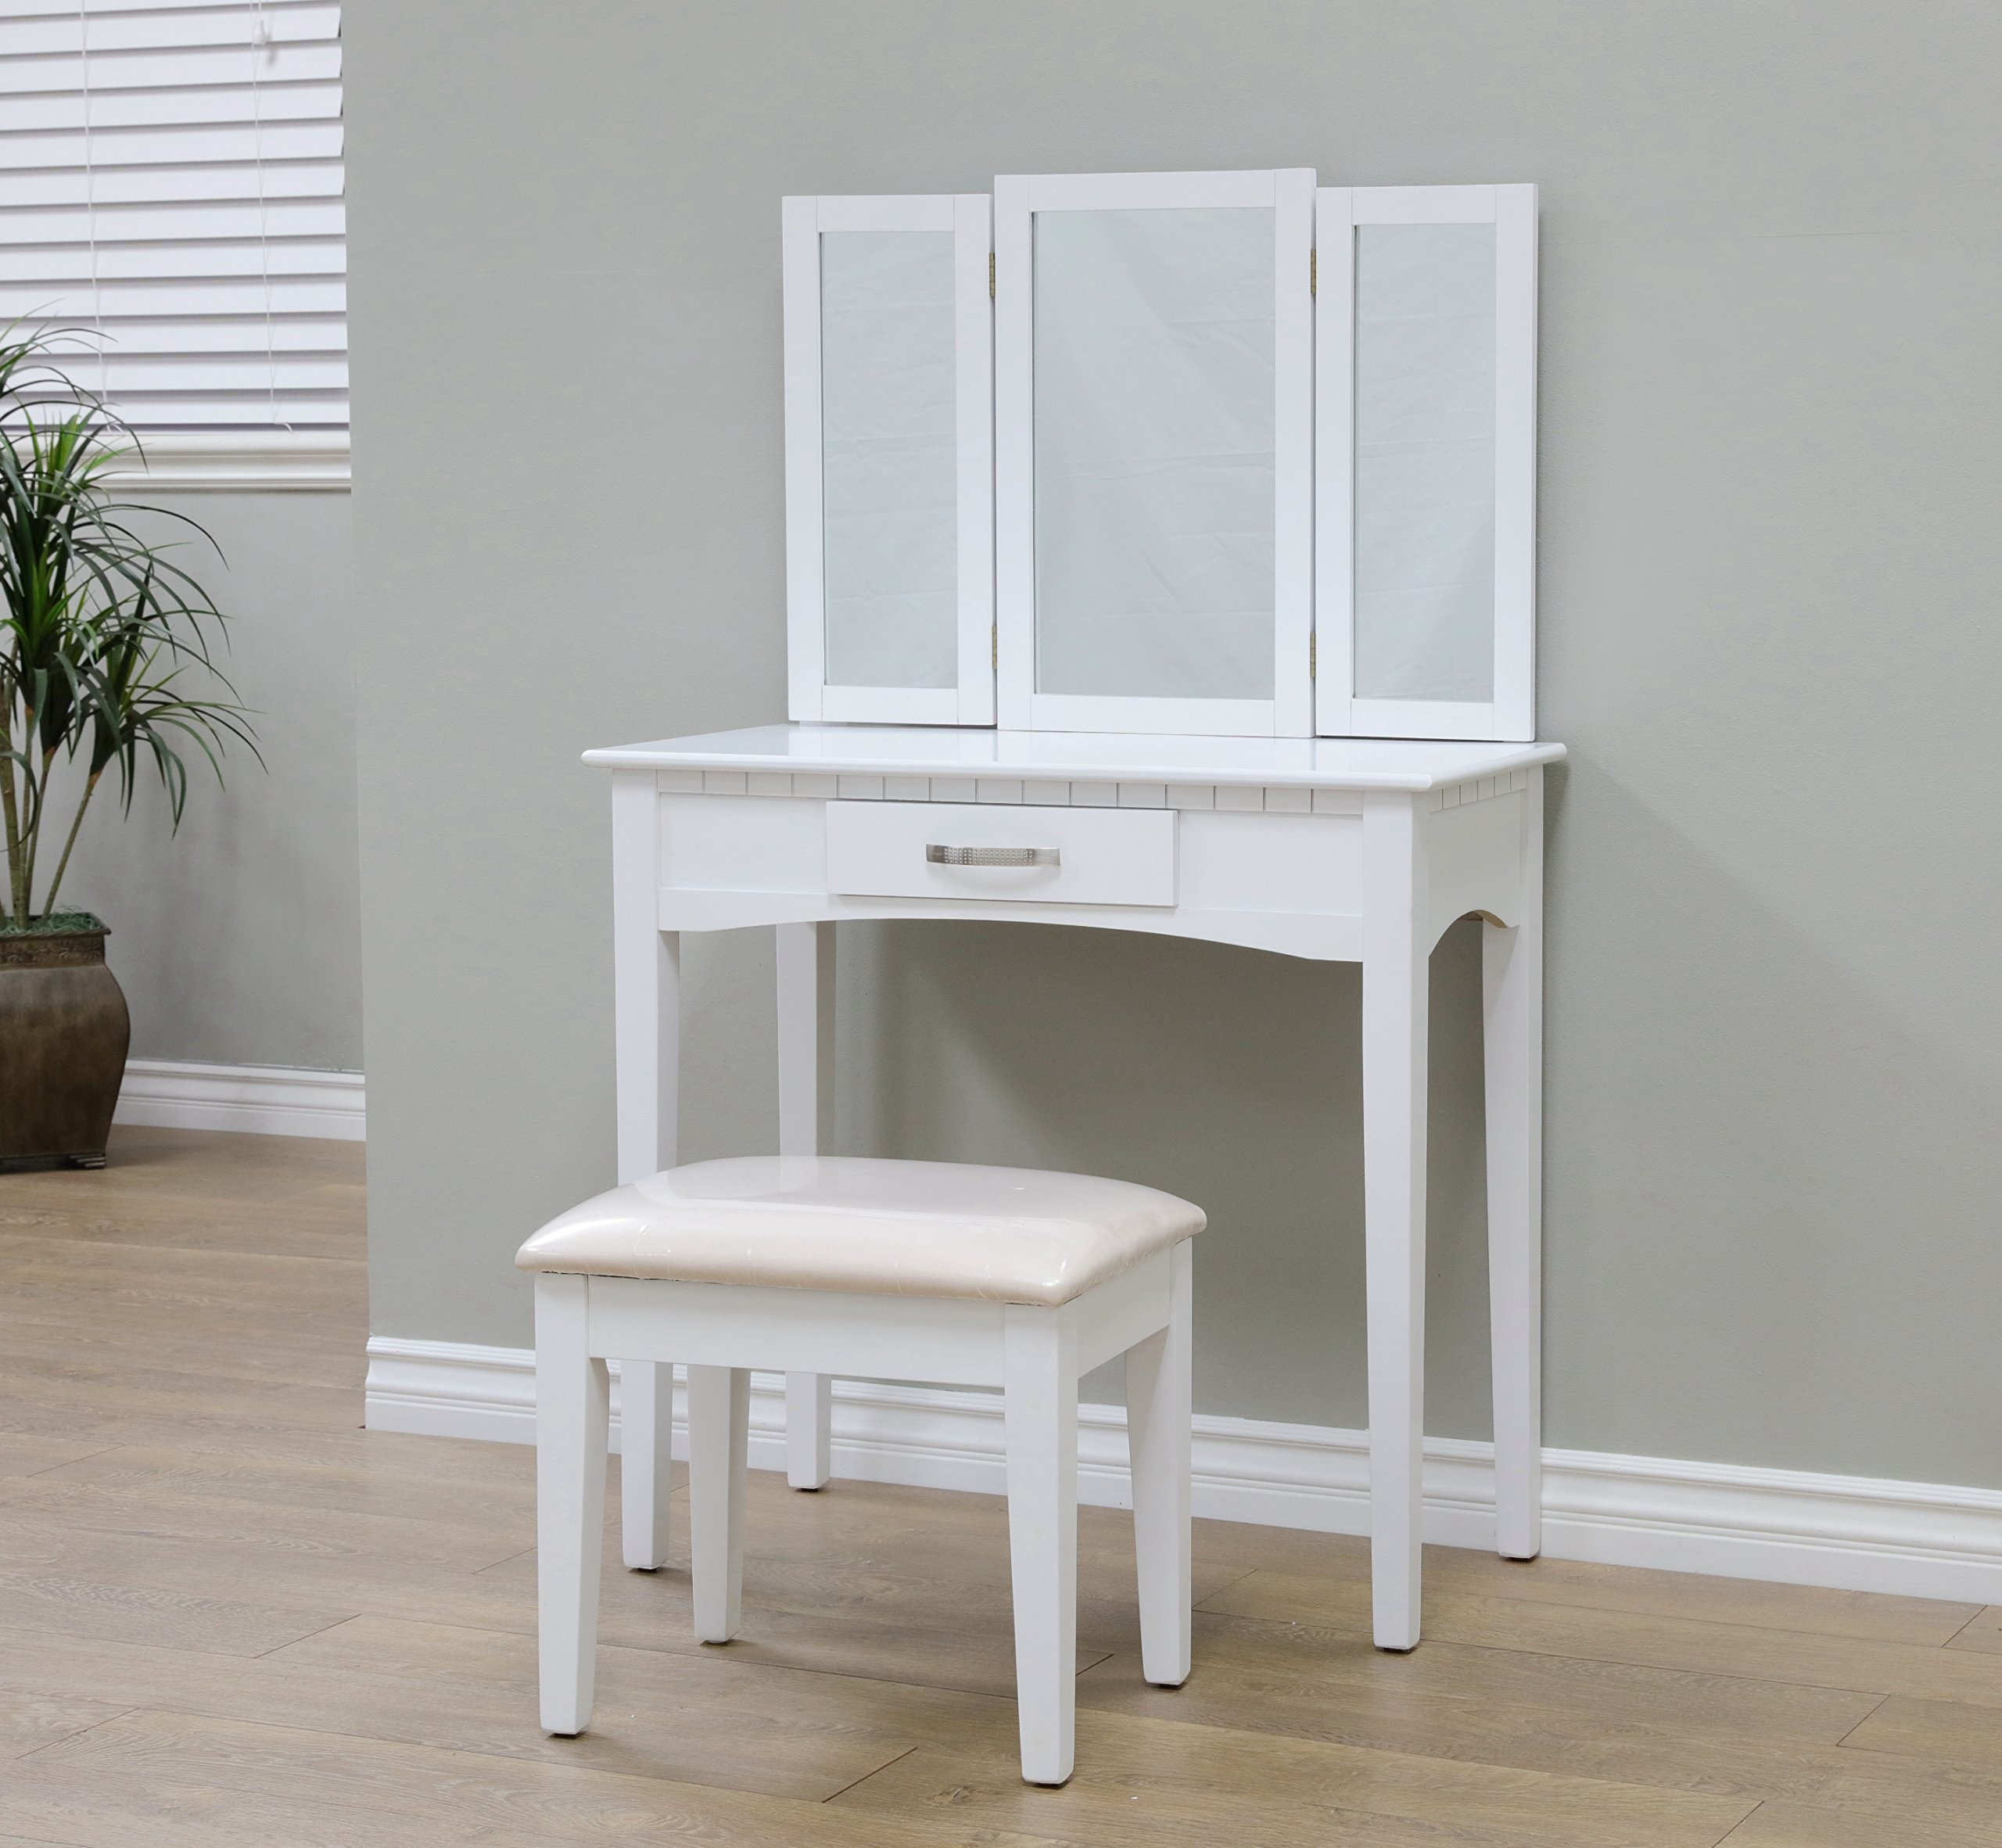 Frenchi Home Furnishing 2 Piece Home Furnishing  Set  Vanity with Stool by Frenchi Home Furnishing